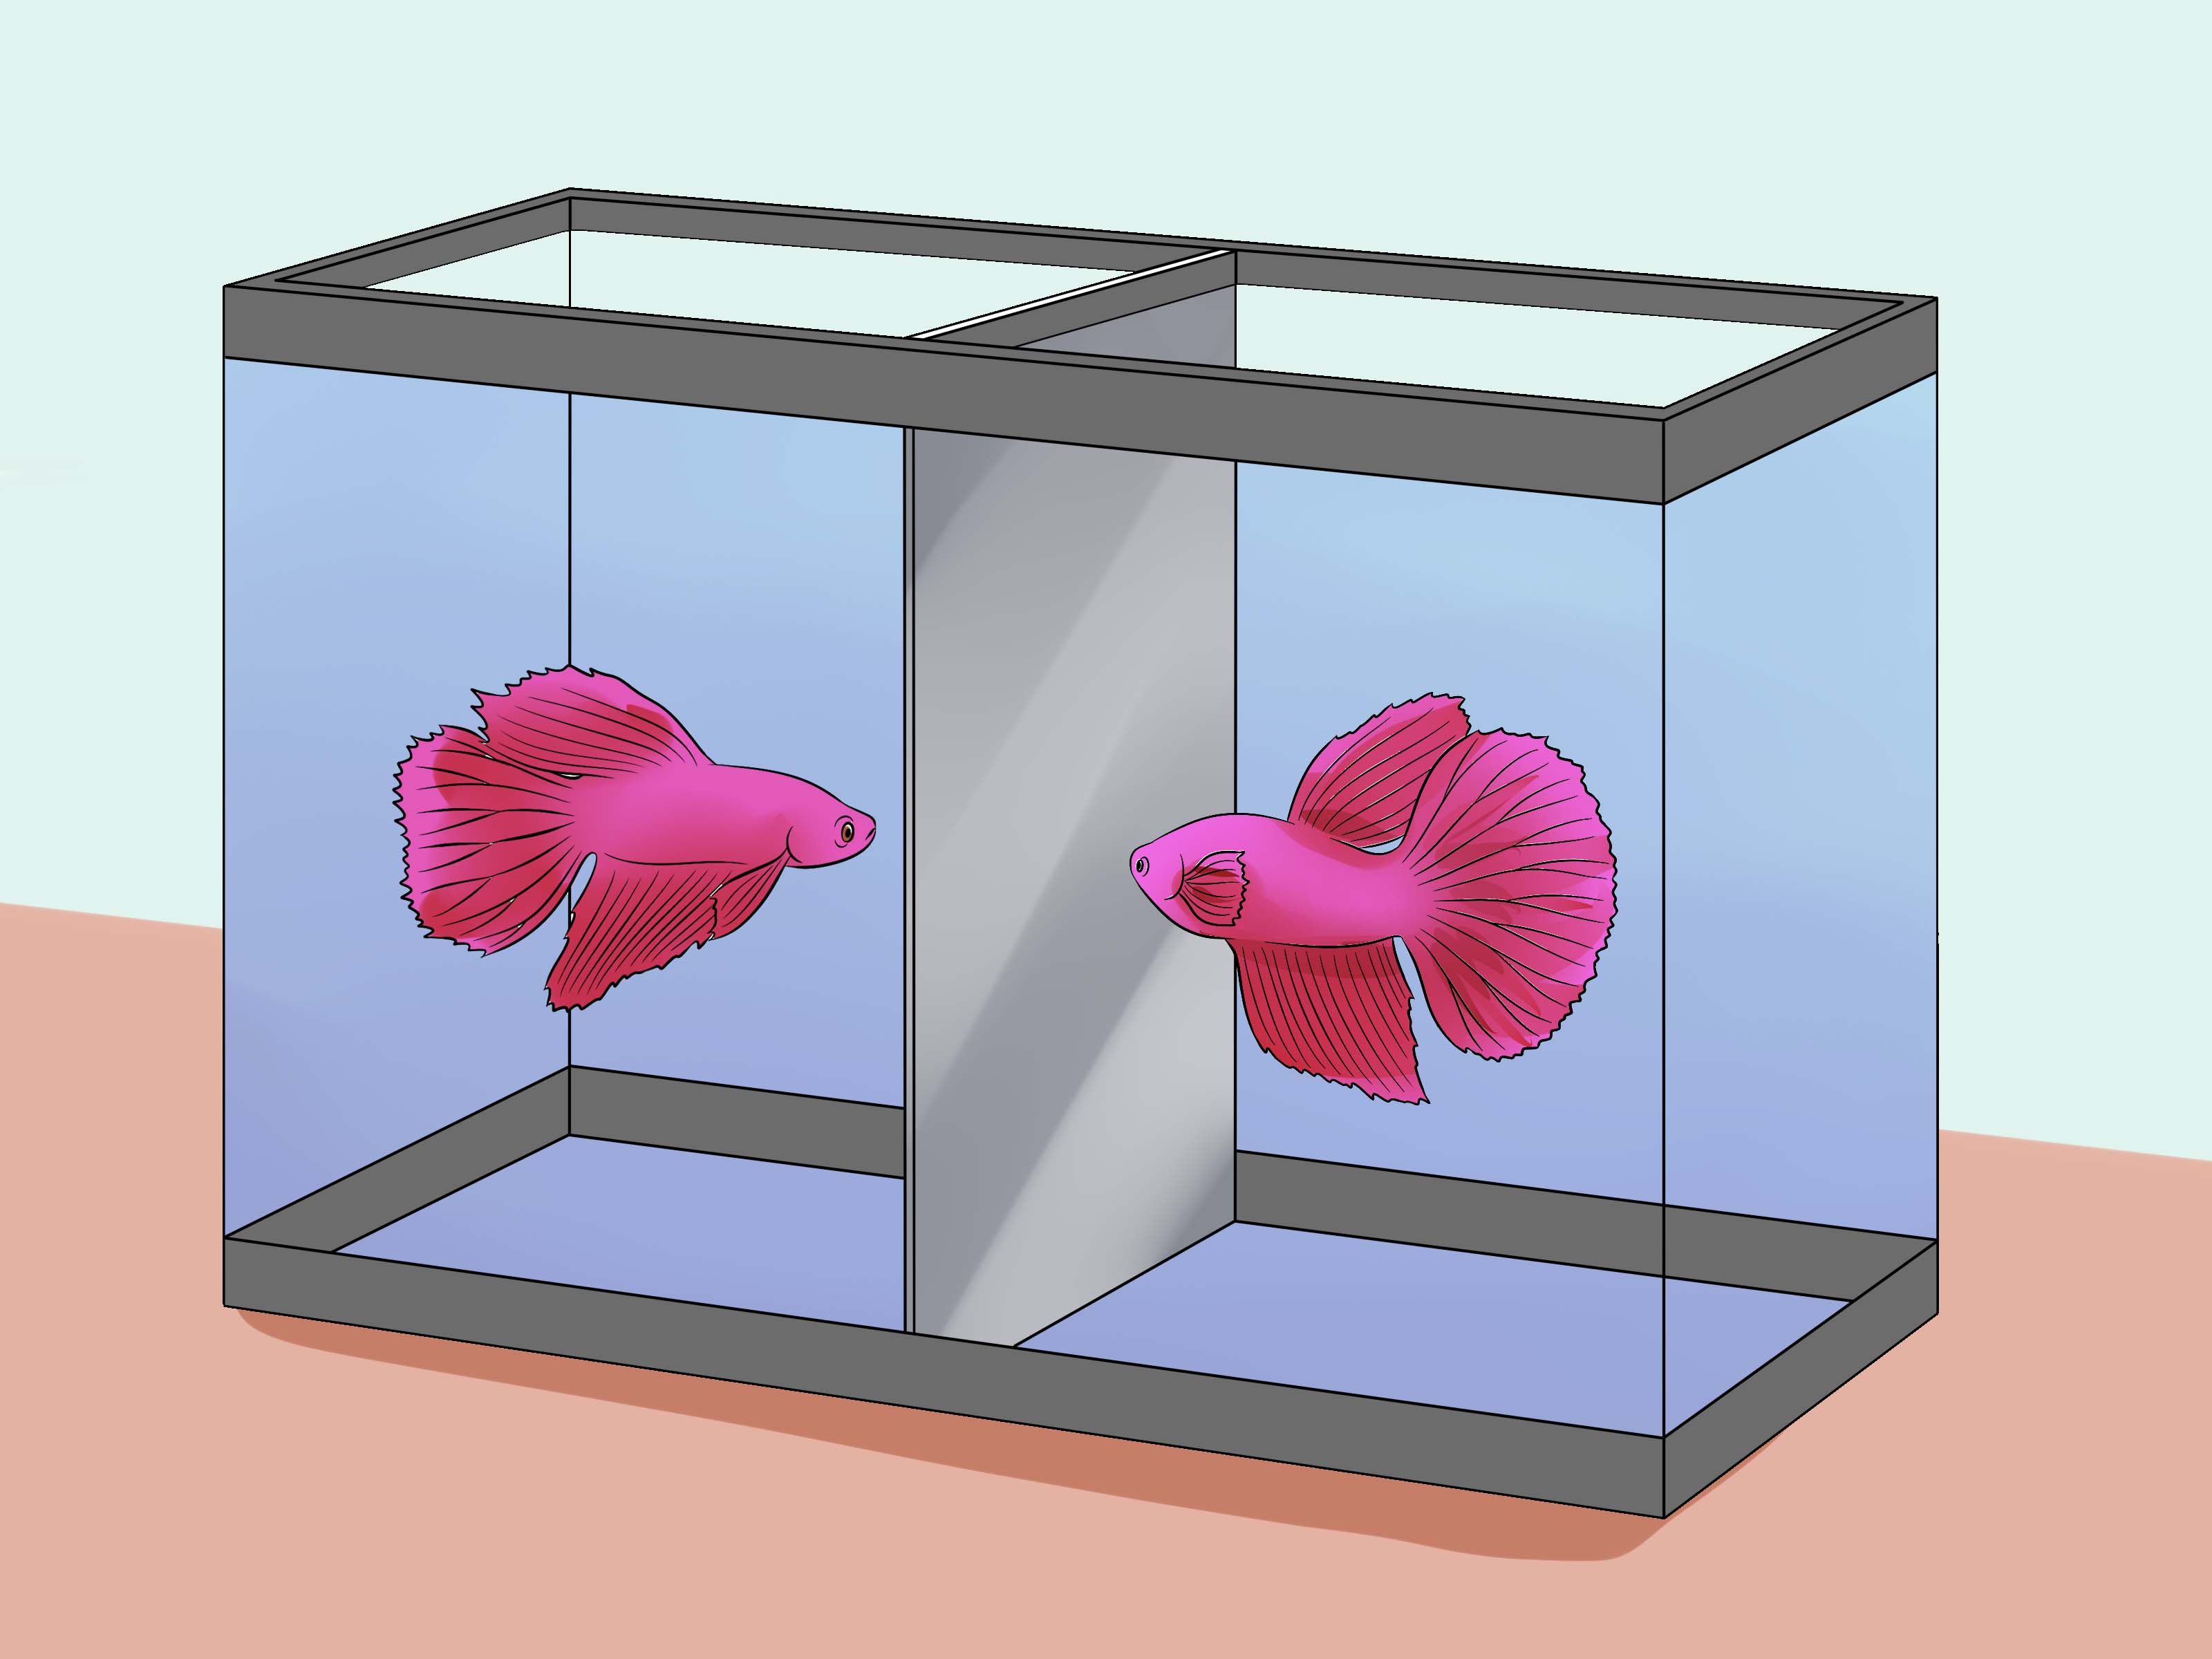 Dashing Wild Betta Fighting Fish Lifespan How To Help A Betta Fish Live Longer Wikihow Betta Fish Lifespan houzz 01 Betta Fish Lifespan